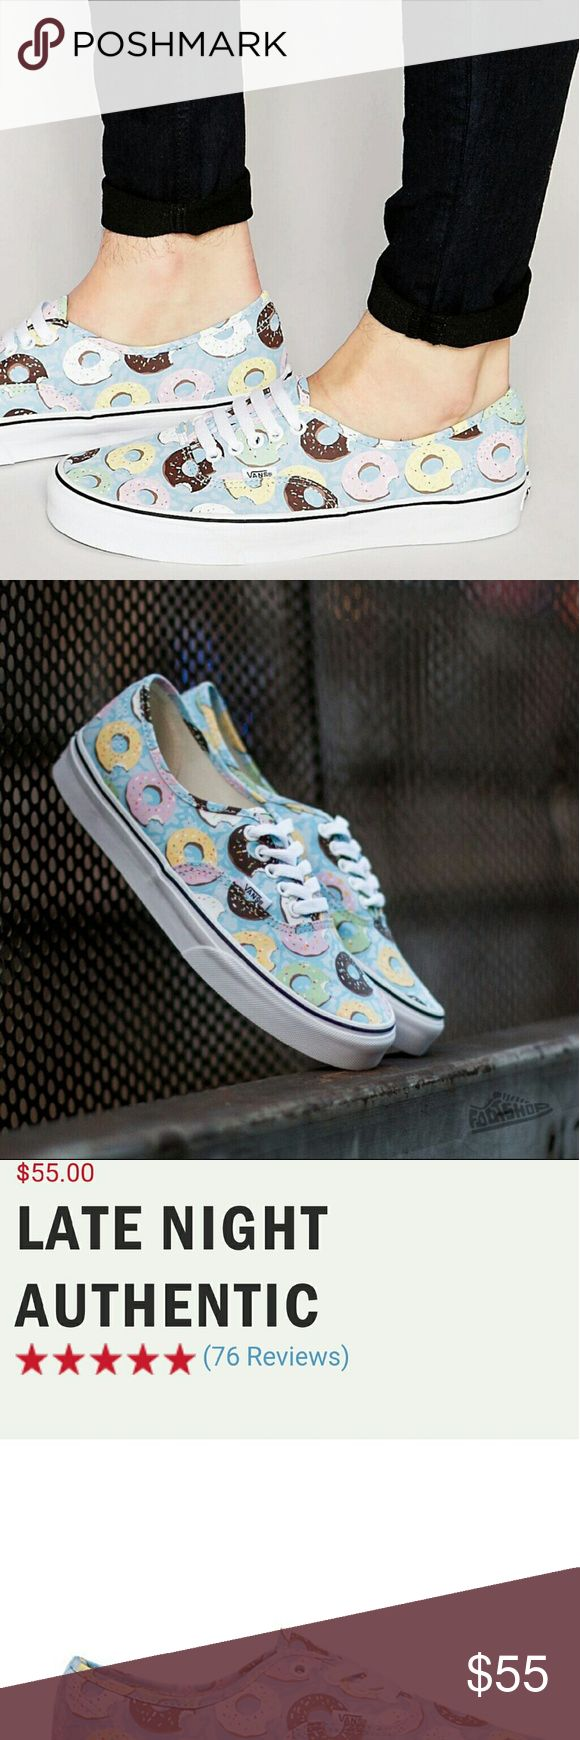 Vans late night authentic Donuts sneakers BNWT Vans donuts tennis shoes Much cuter in person Box included  I have a size 7 and size 8 Vans Shoes Sneakers